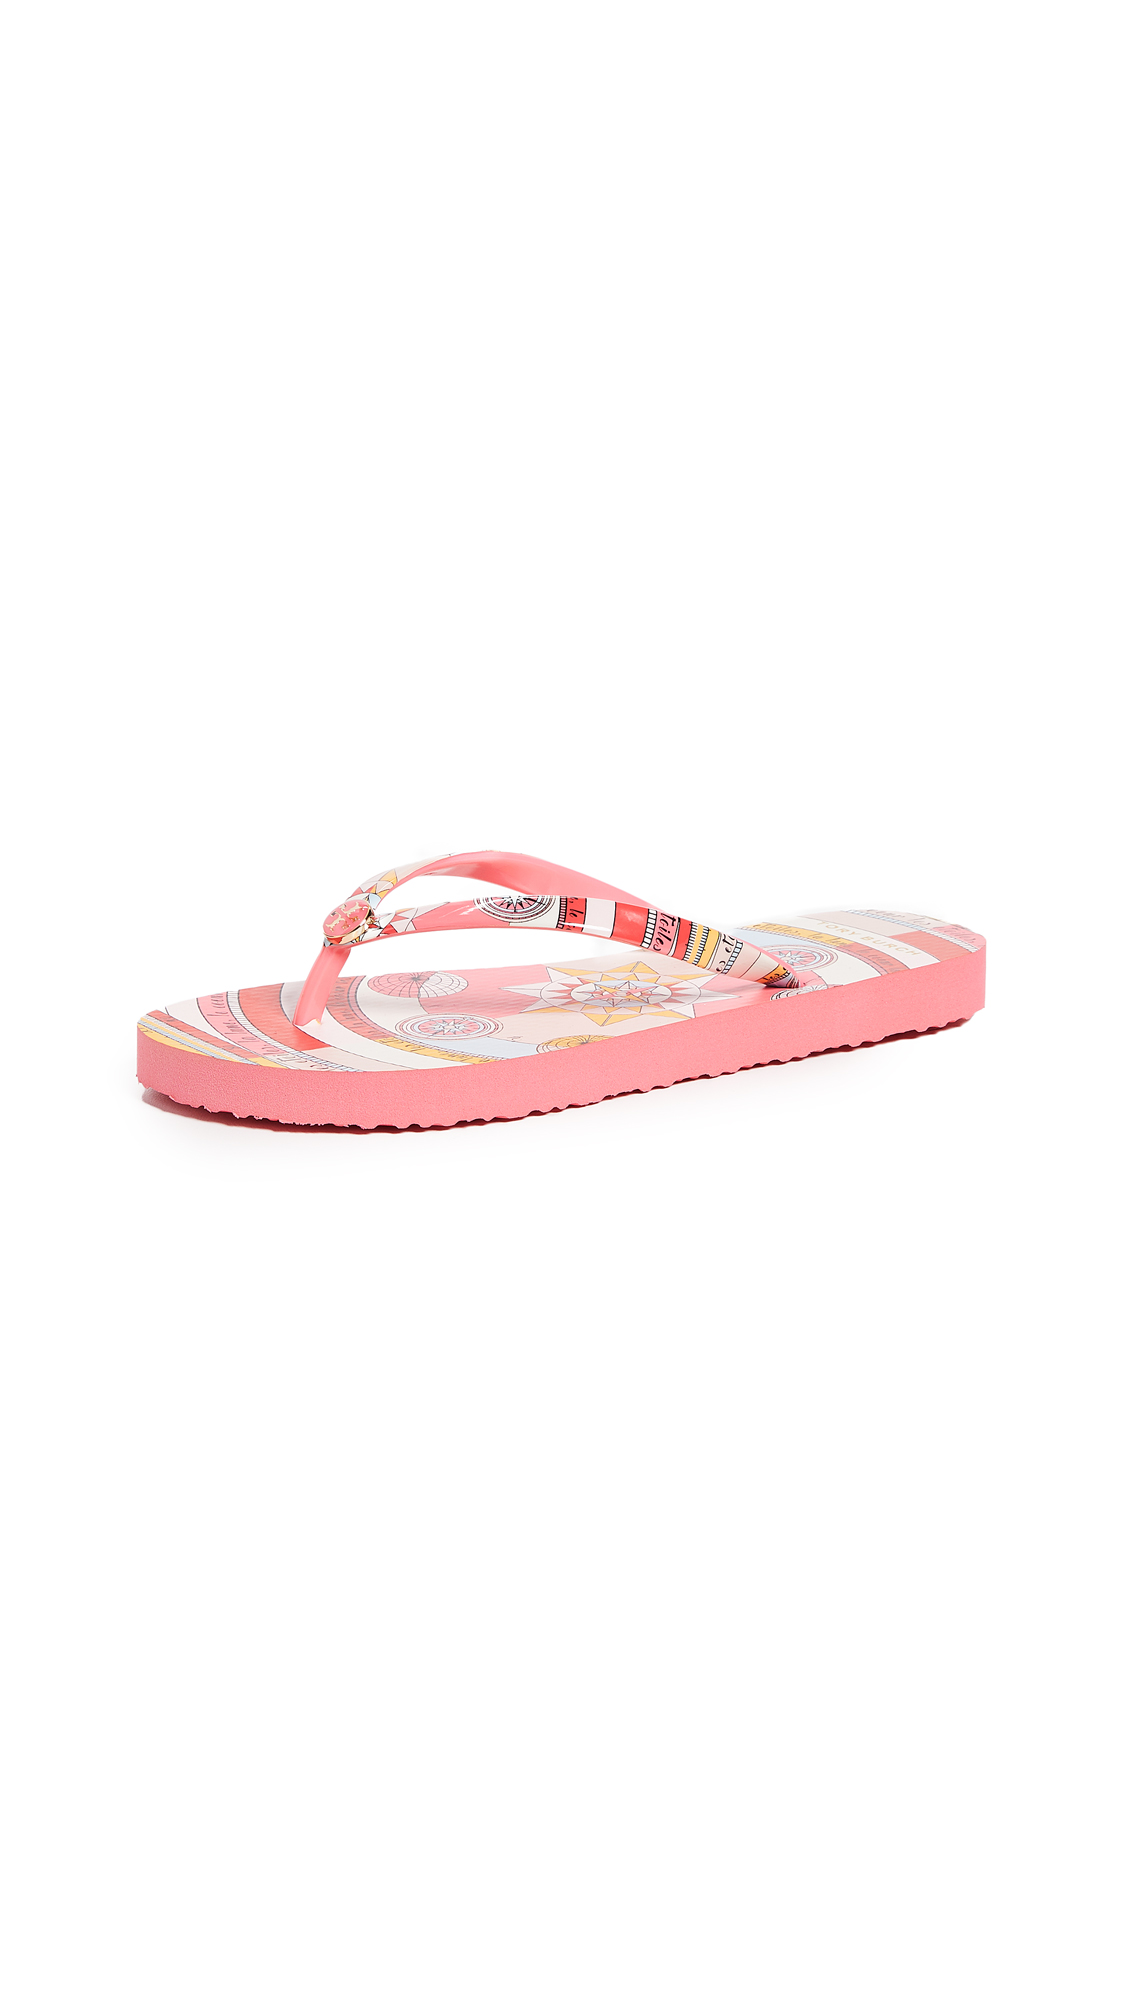 Tory Burch Printed Thin Flip Flops - Pink Constellation